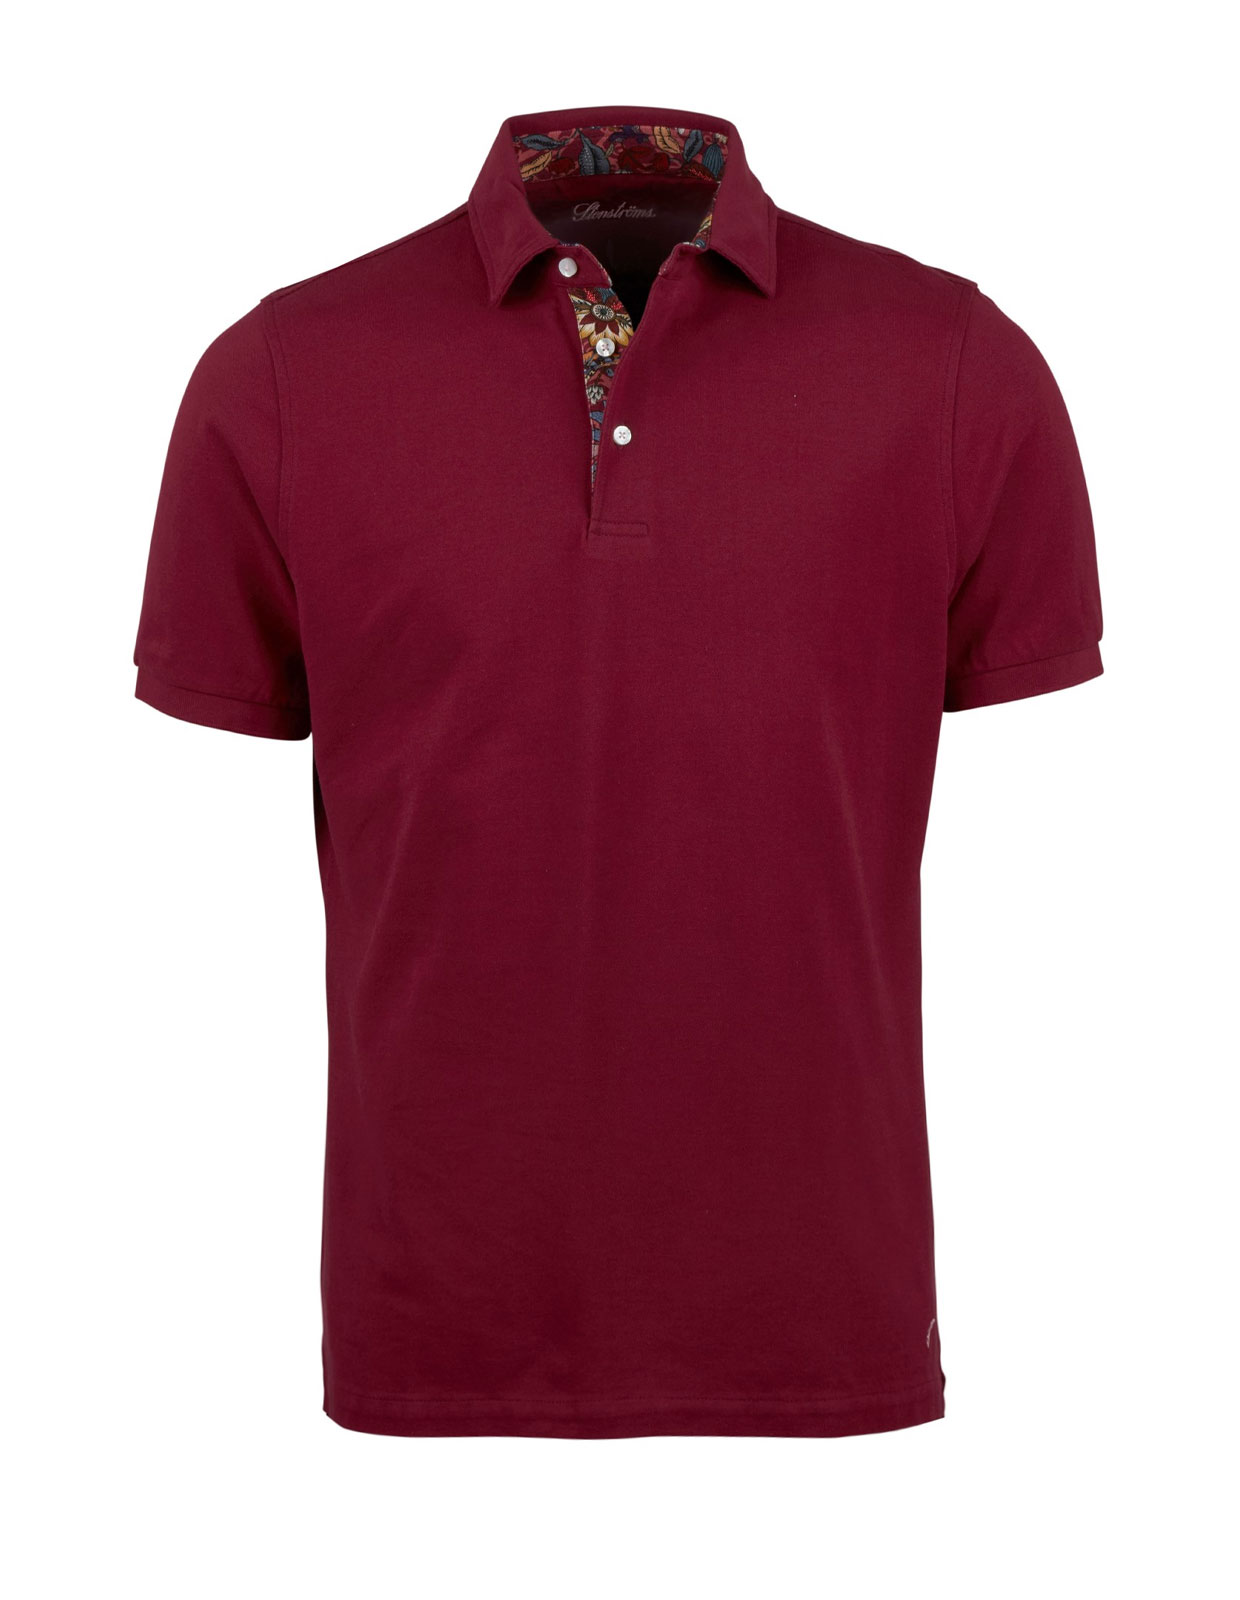 Polo Shirt Cotton Contrast Wine